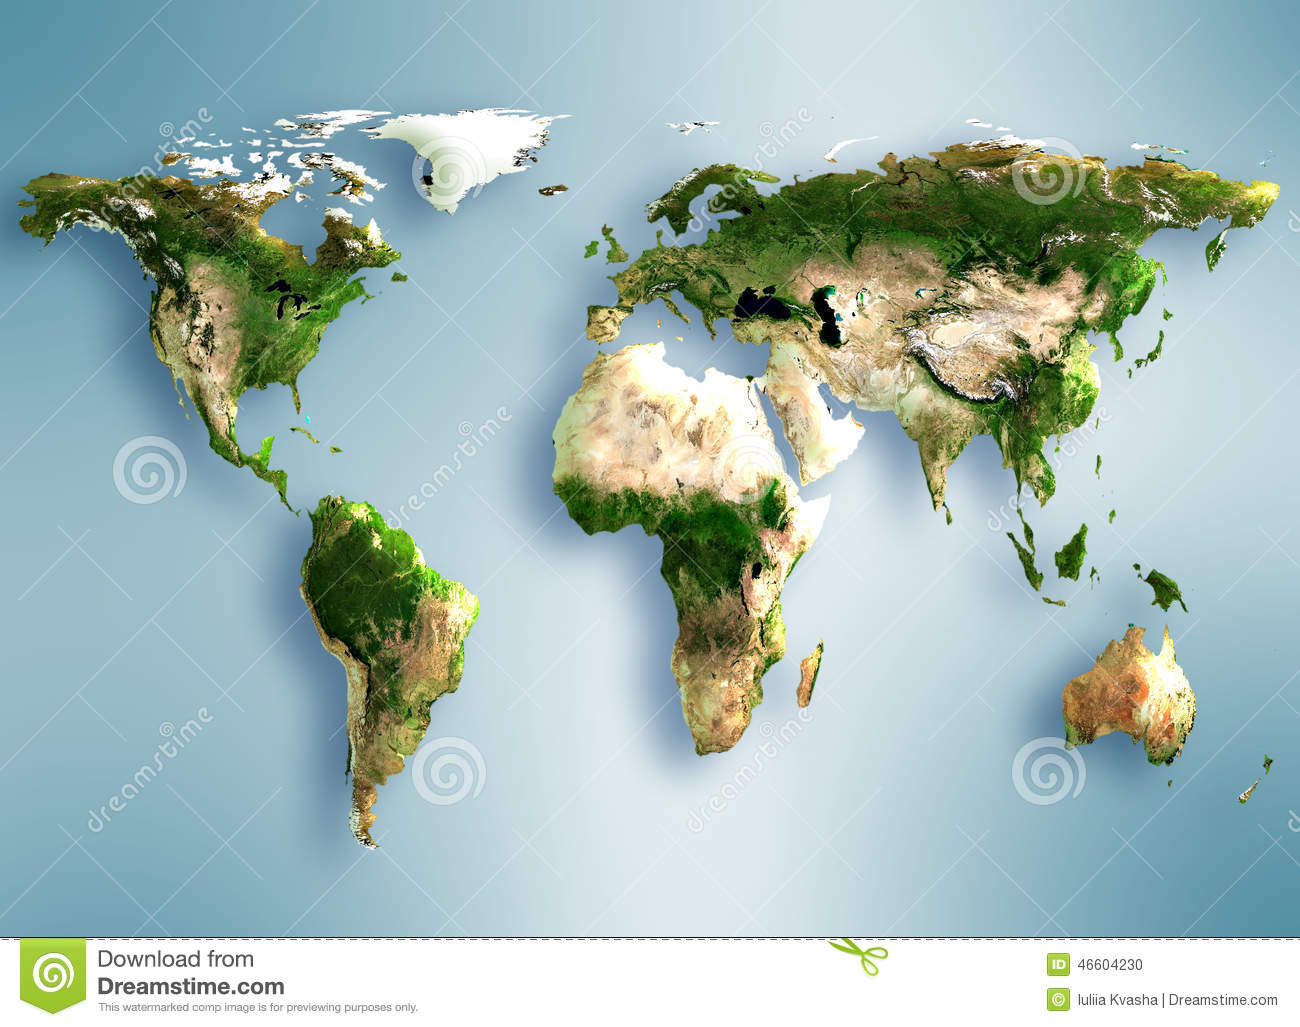 World Map stock photo. Image of imaginary, data, corporation ... on mythological world map, webkinz world map, world system map, ancient language map, sick world map, perfect society map, futuristic town map, second world map, imagination world map, make believe island map, create your own fictional map, living world map, fictional world map, ideology world map, first law abercrombie map, persistent world map, one piece world map, large world map, negative world map, fictional nation map,